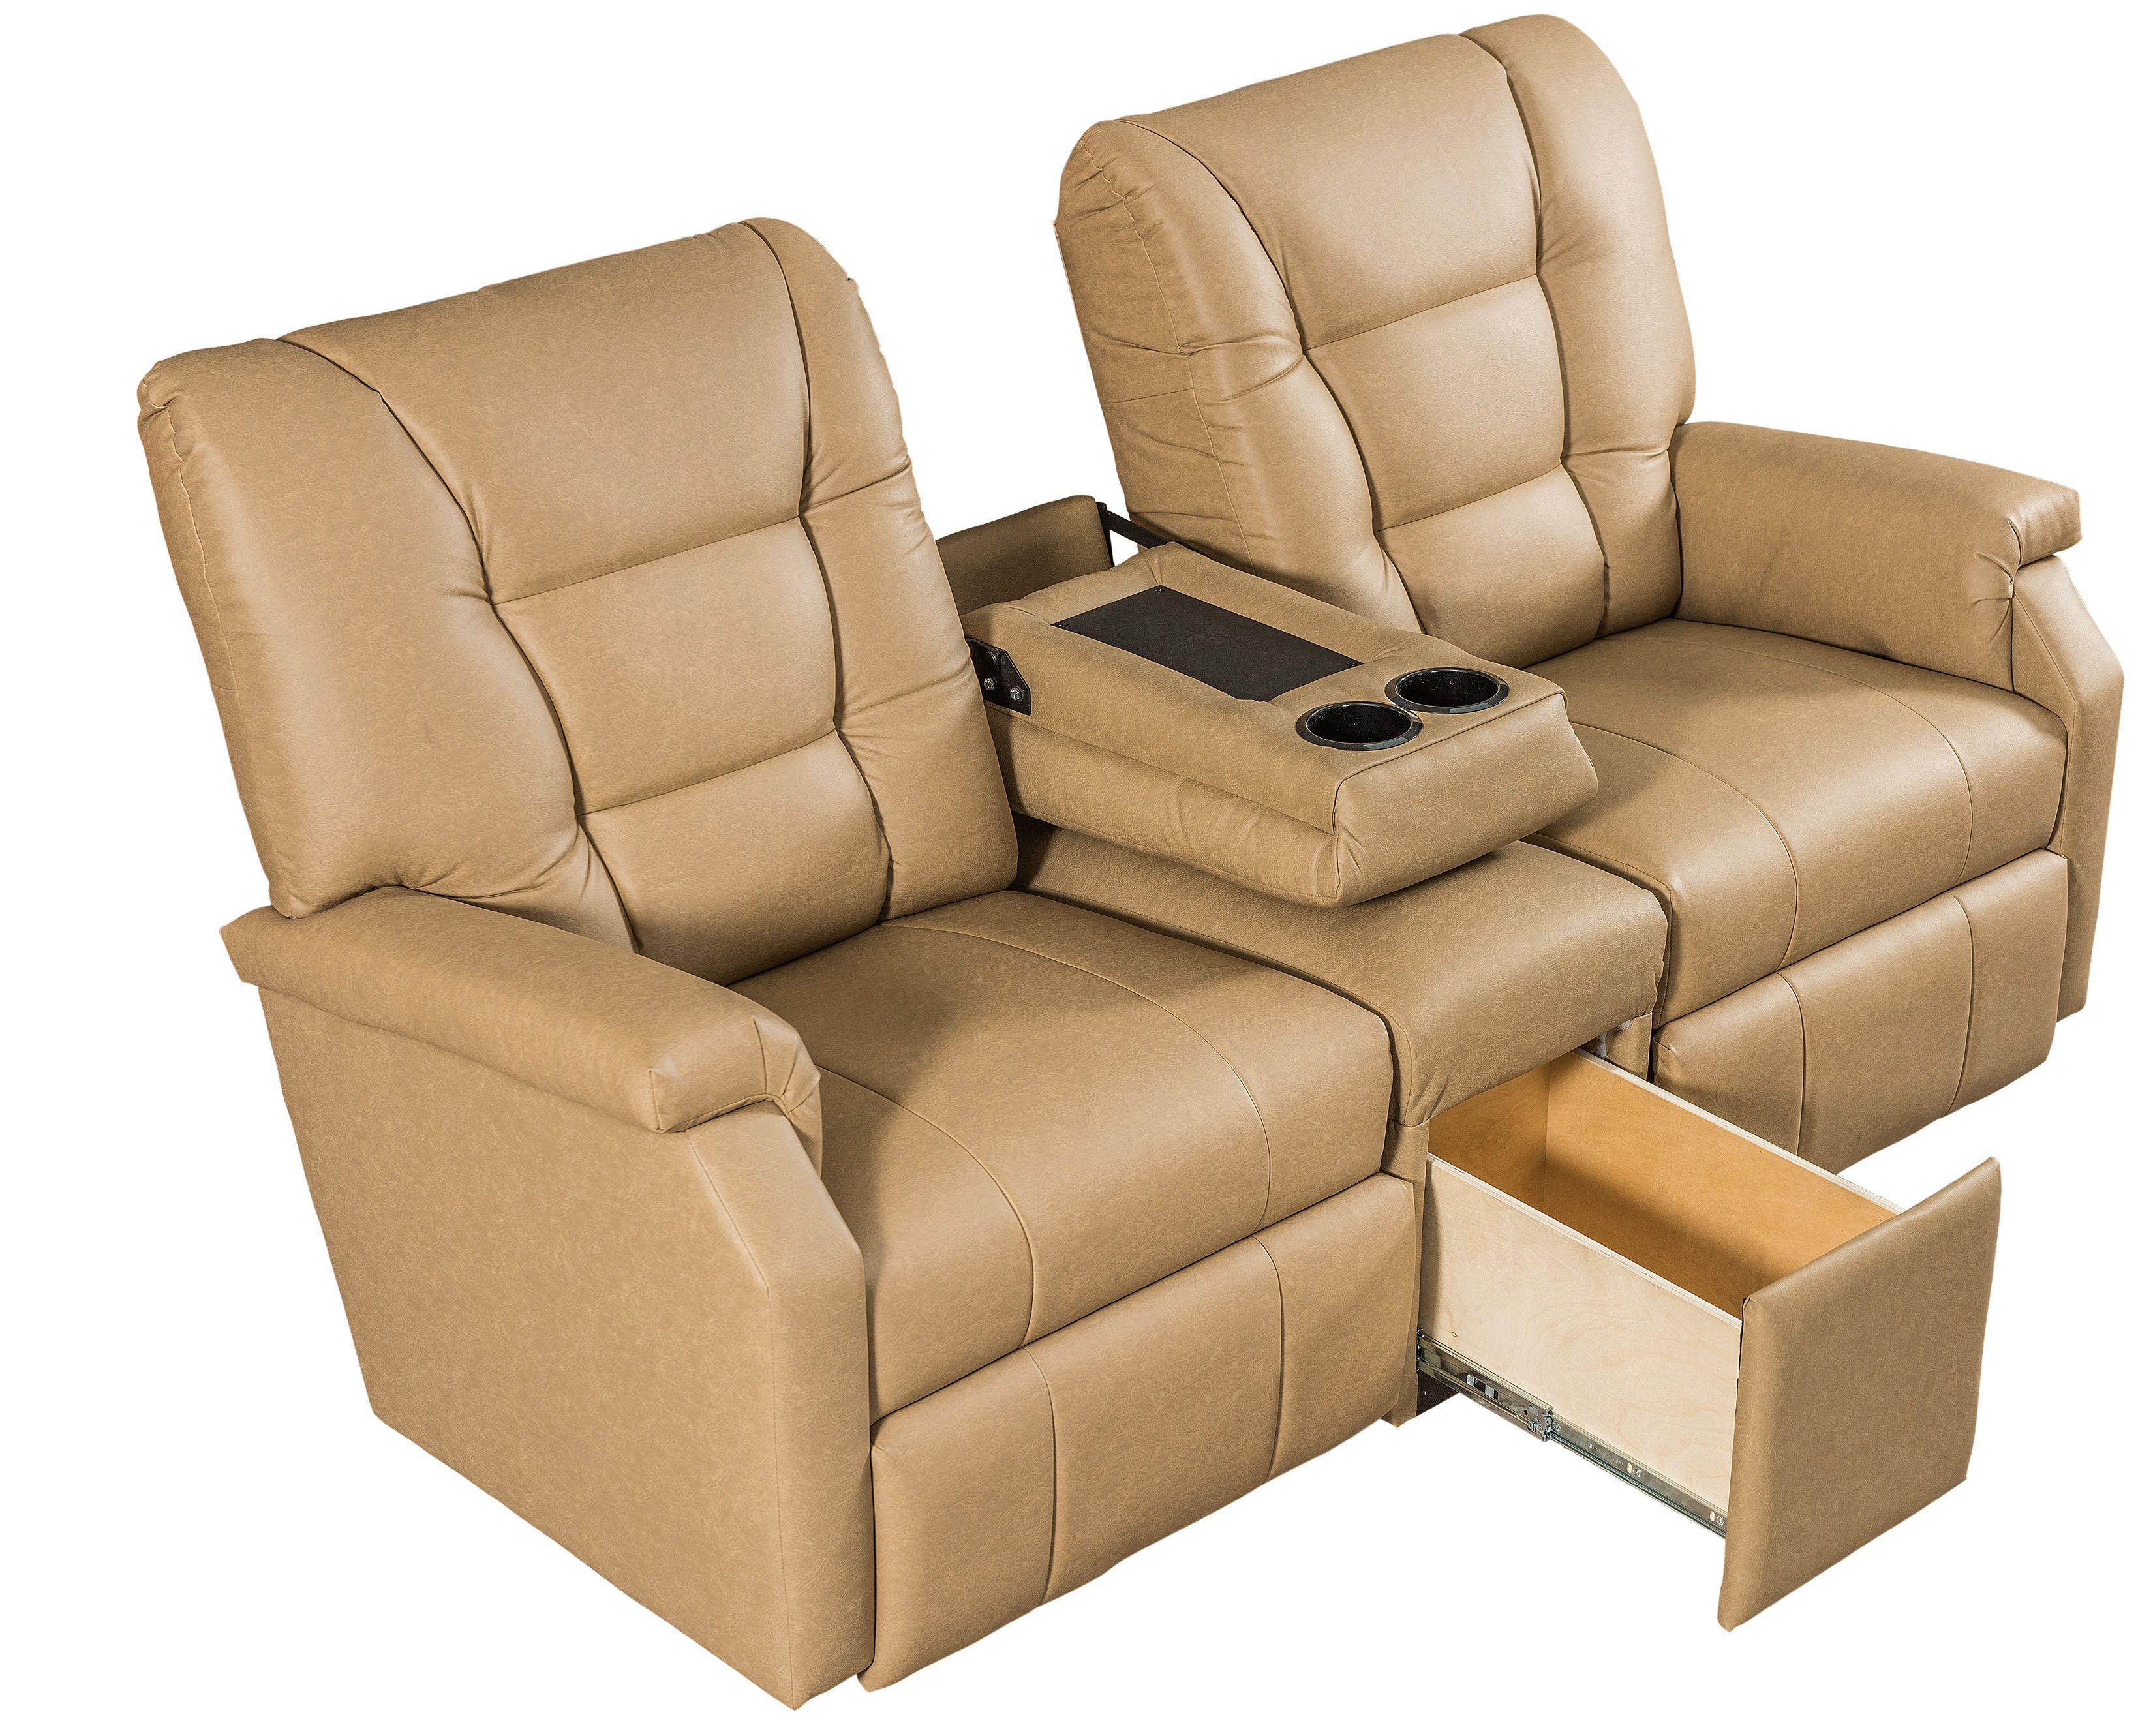 Lambright Superior Theater Seating Wall Hugger Recliners Fold